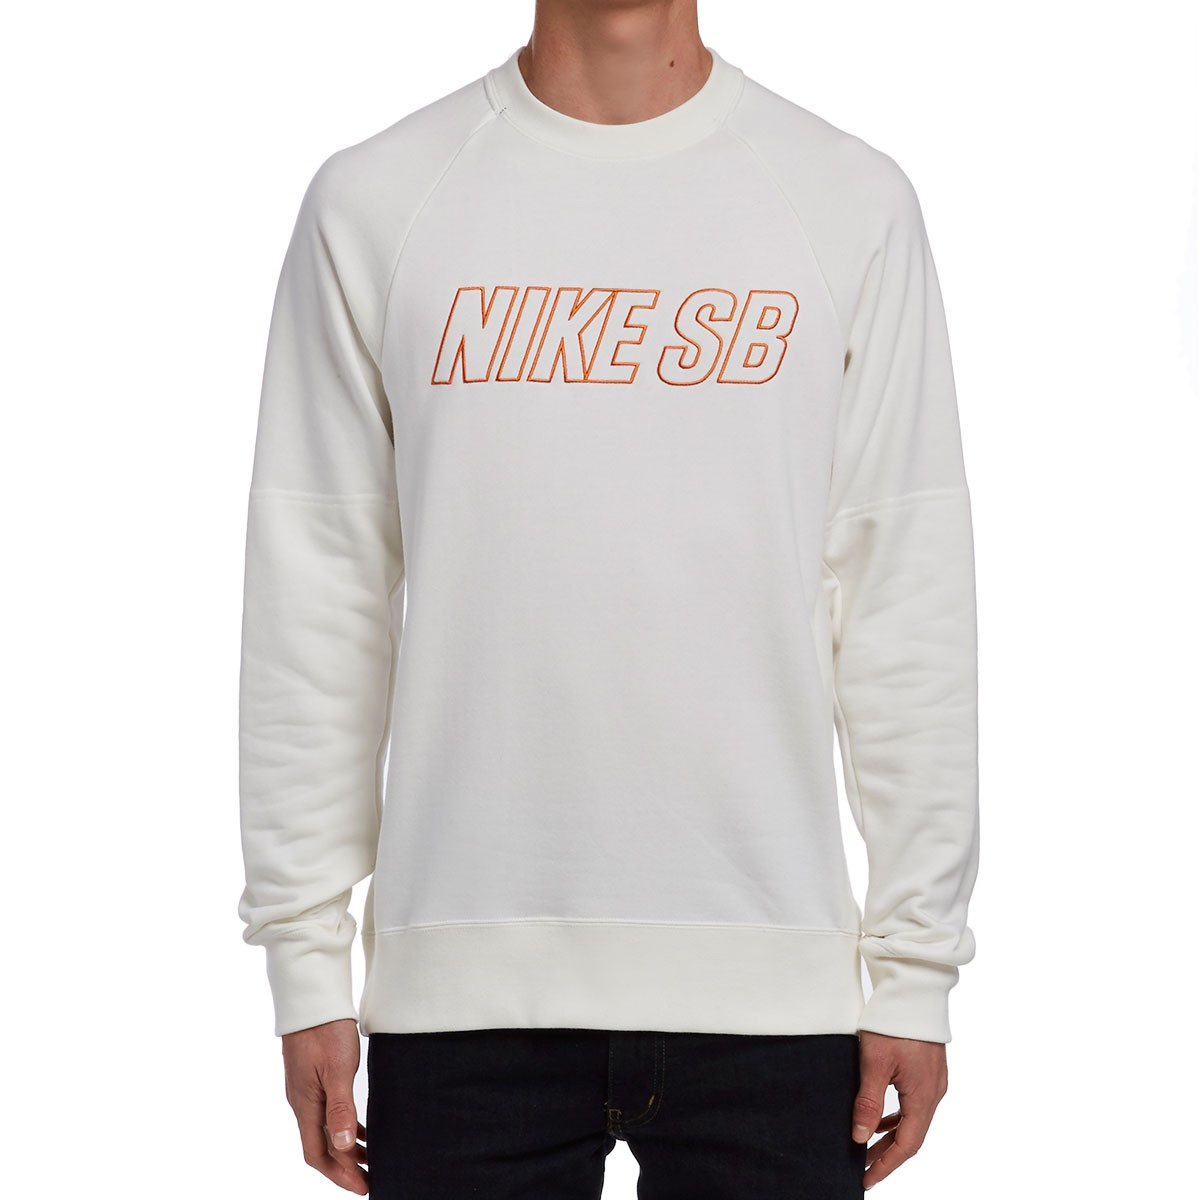 Nike Sb Everett Reveal Crew Sweatshirt Ivory Clay Orange